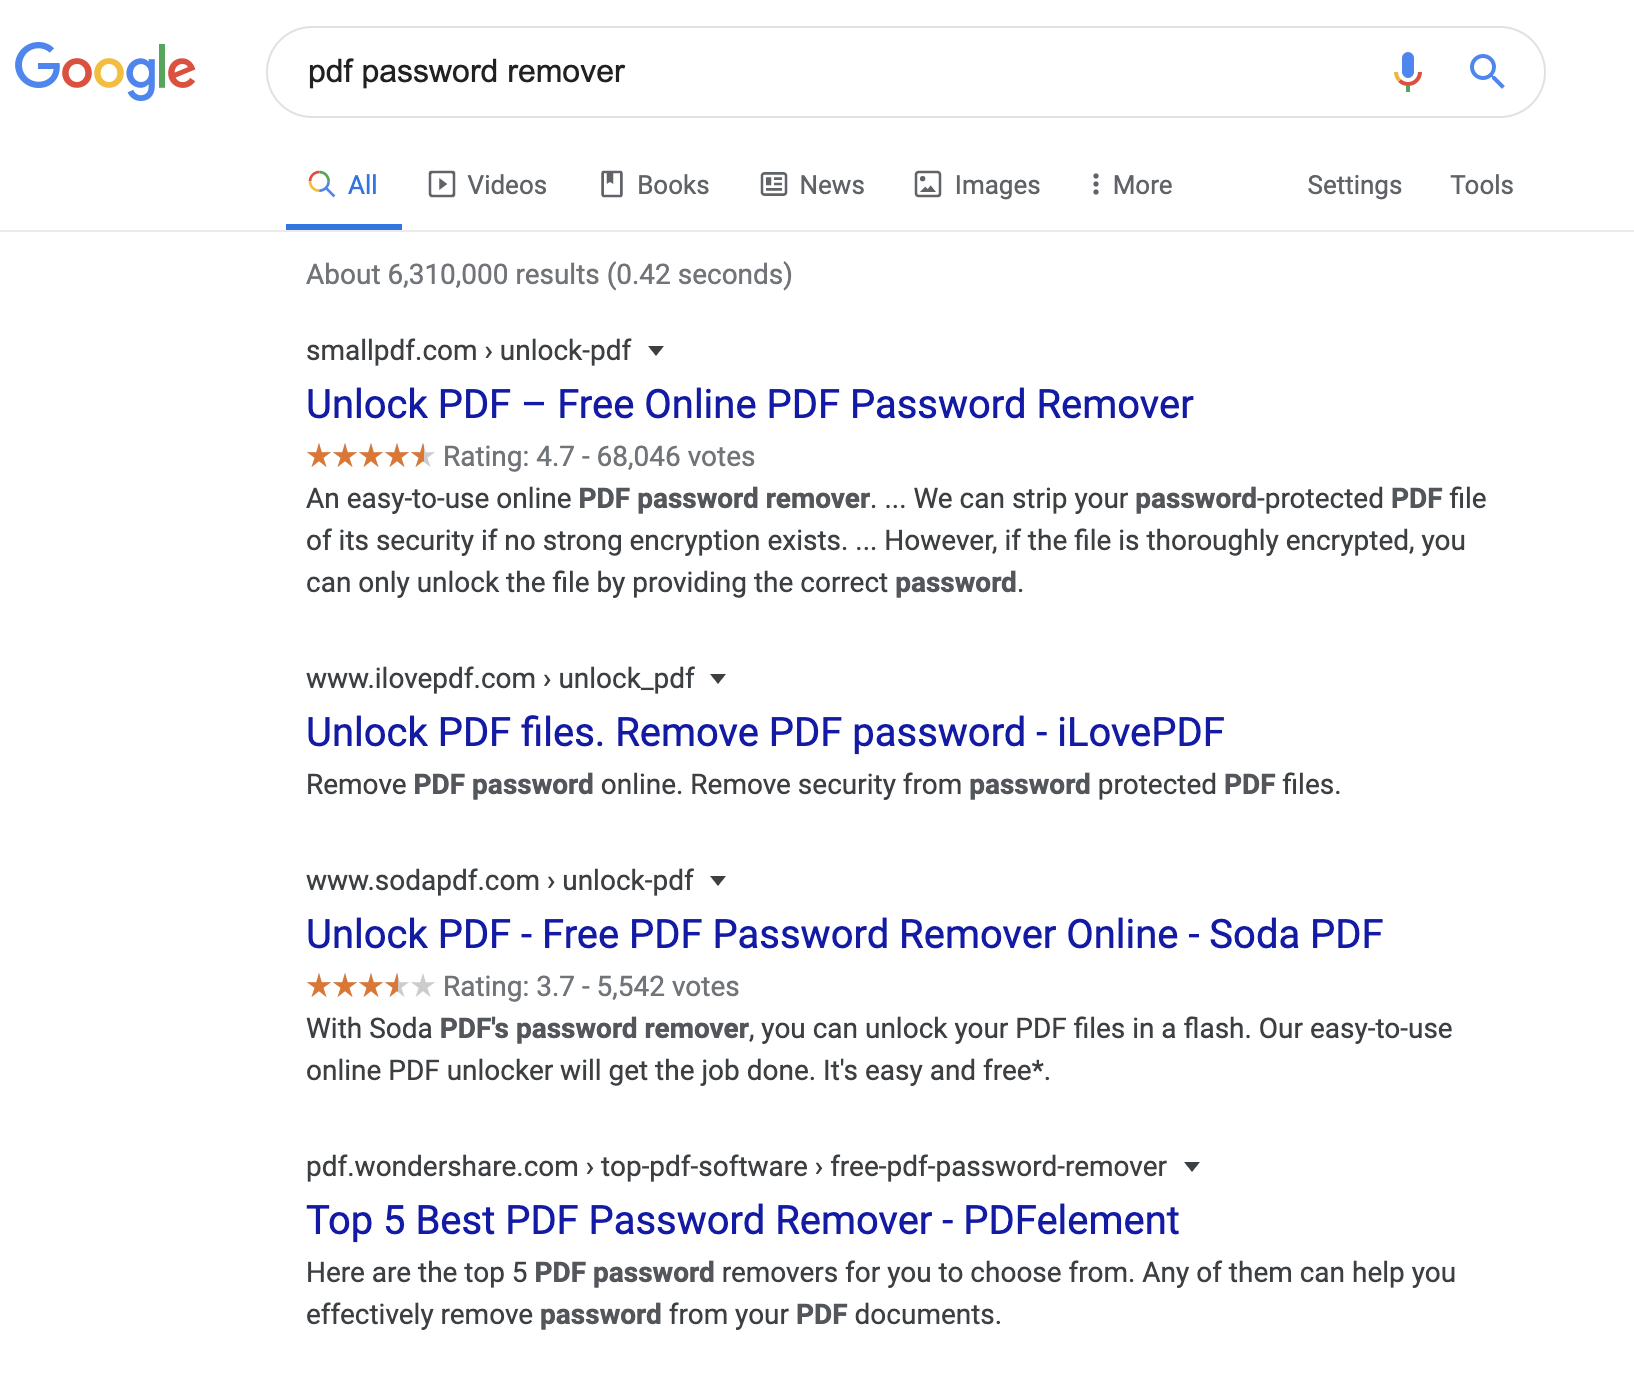 google search result showing pdf password remover results